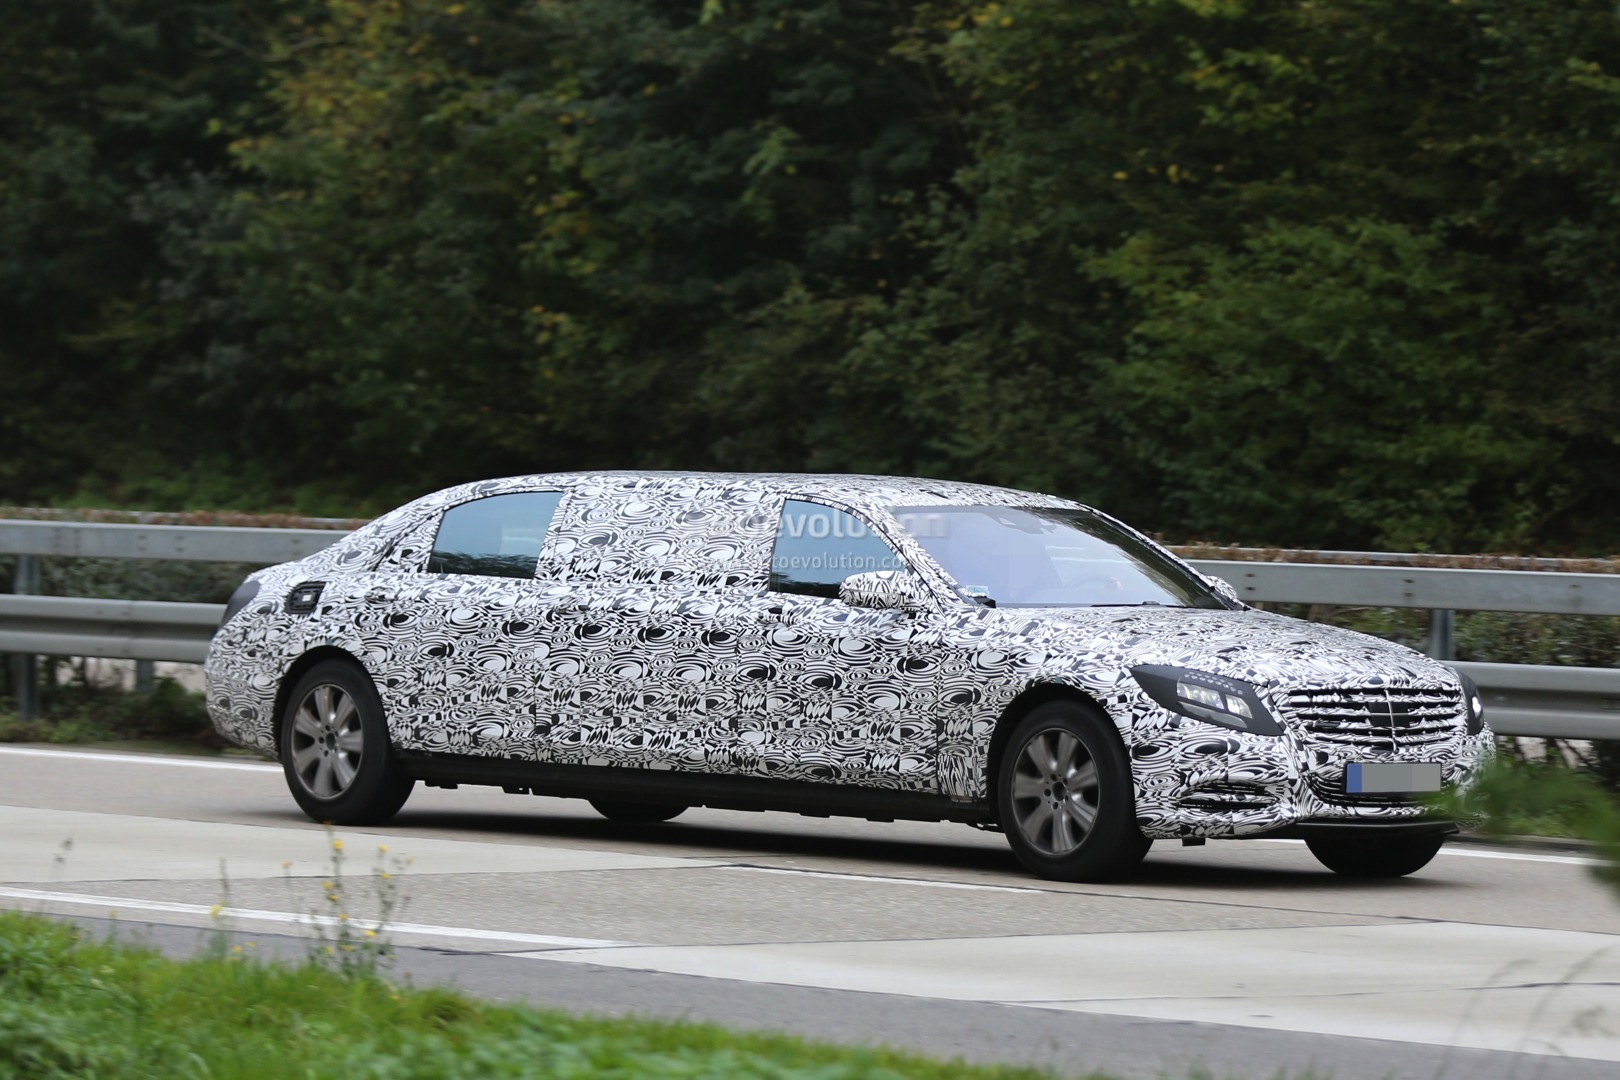 https://s1.cdn.autoevolution.com/images/news/gallery/2016-mercedes-benz-s-600-pullman-spied-getting-closer-to-production-photo-gallery_14.jpg